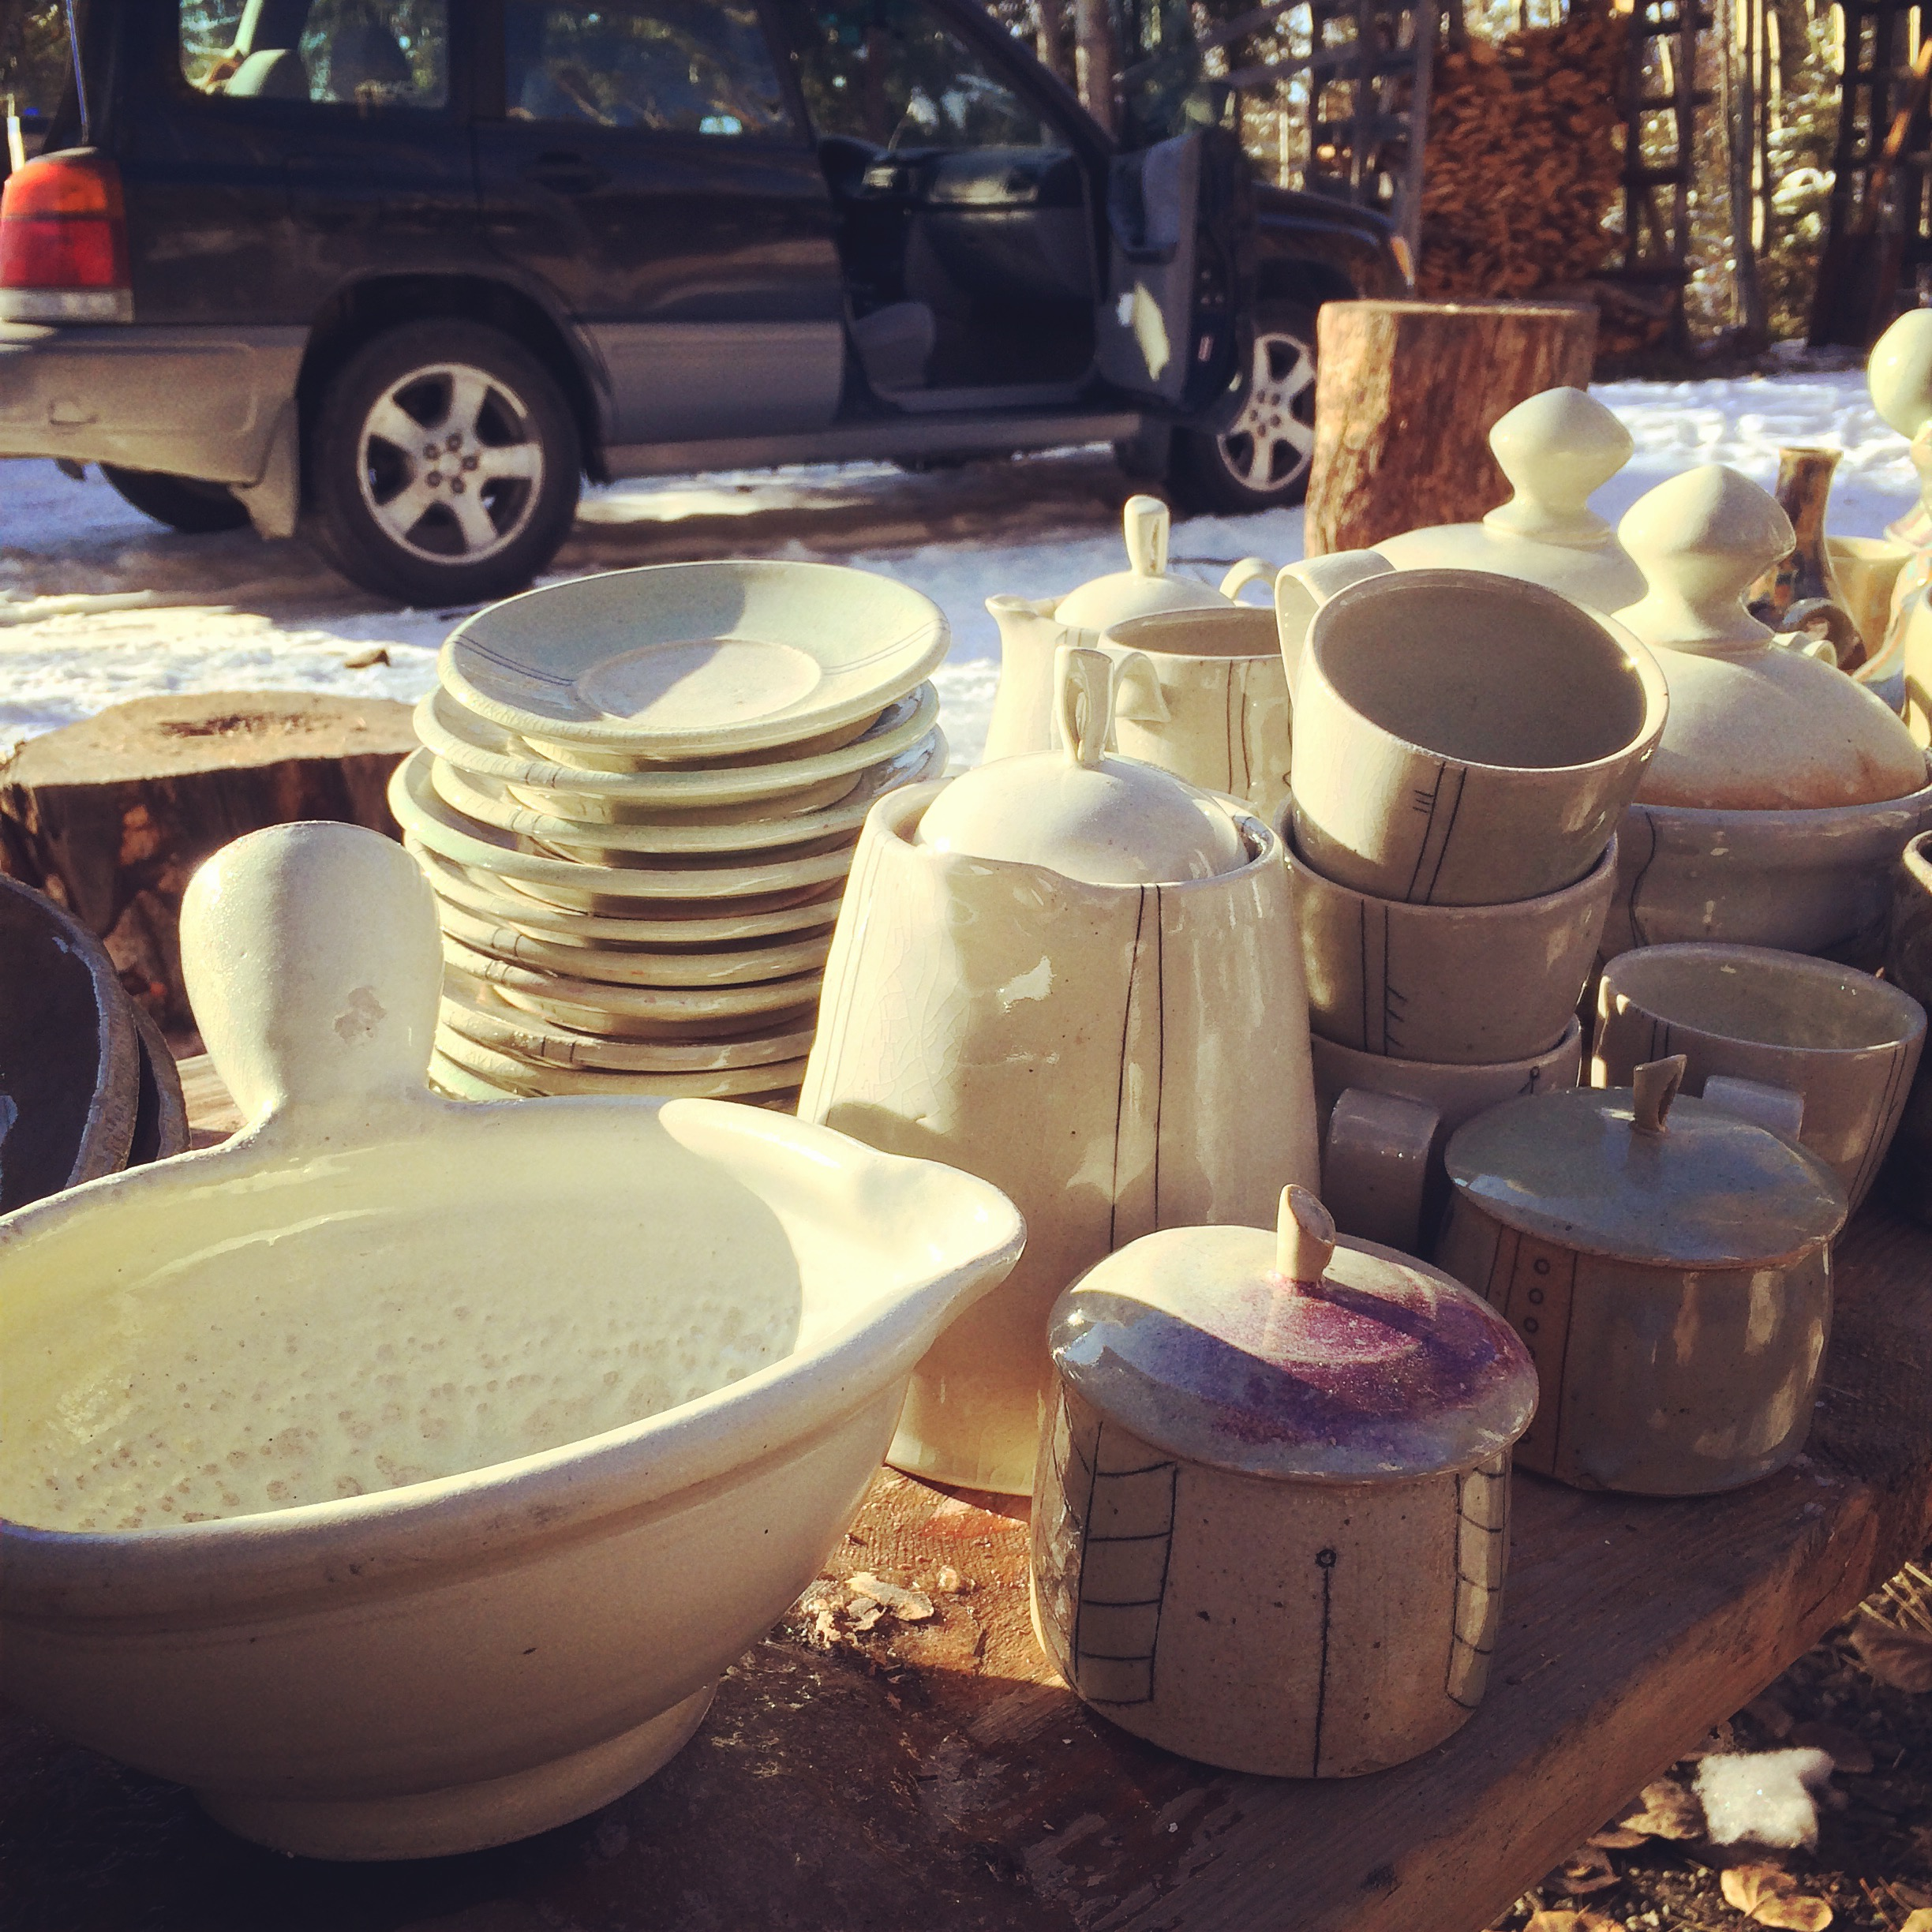 It was a very Merry Christmas! Lots of great pots from this firing!